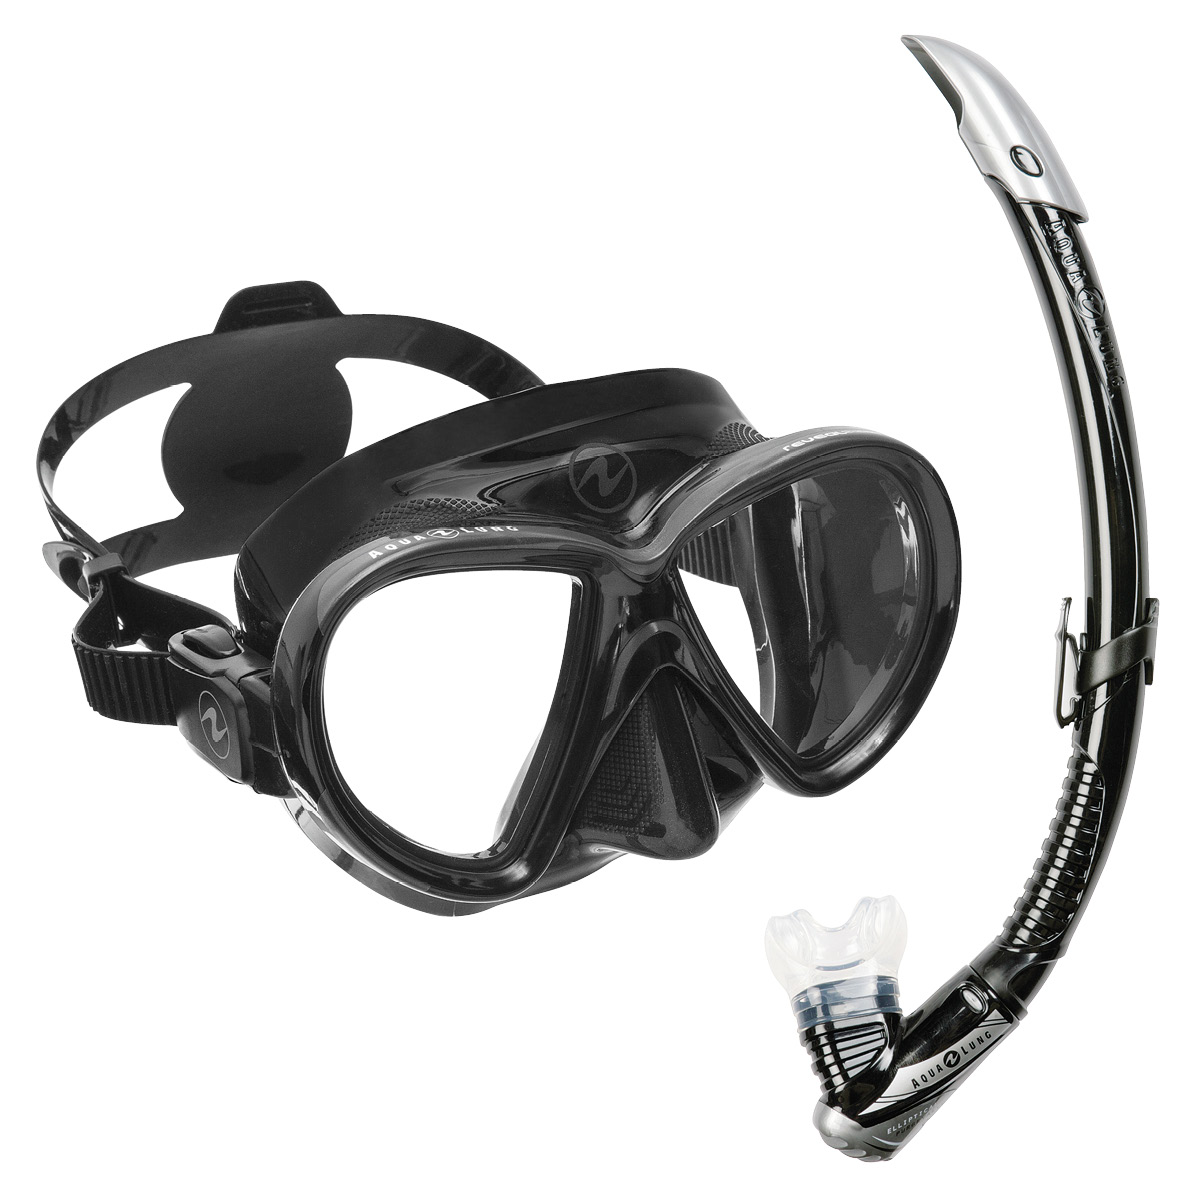 Aqualung Reveal X2 snorkelset